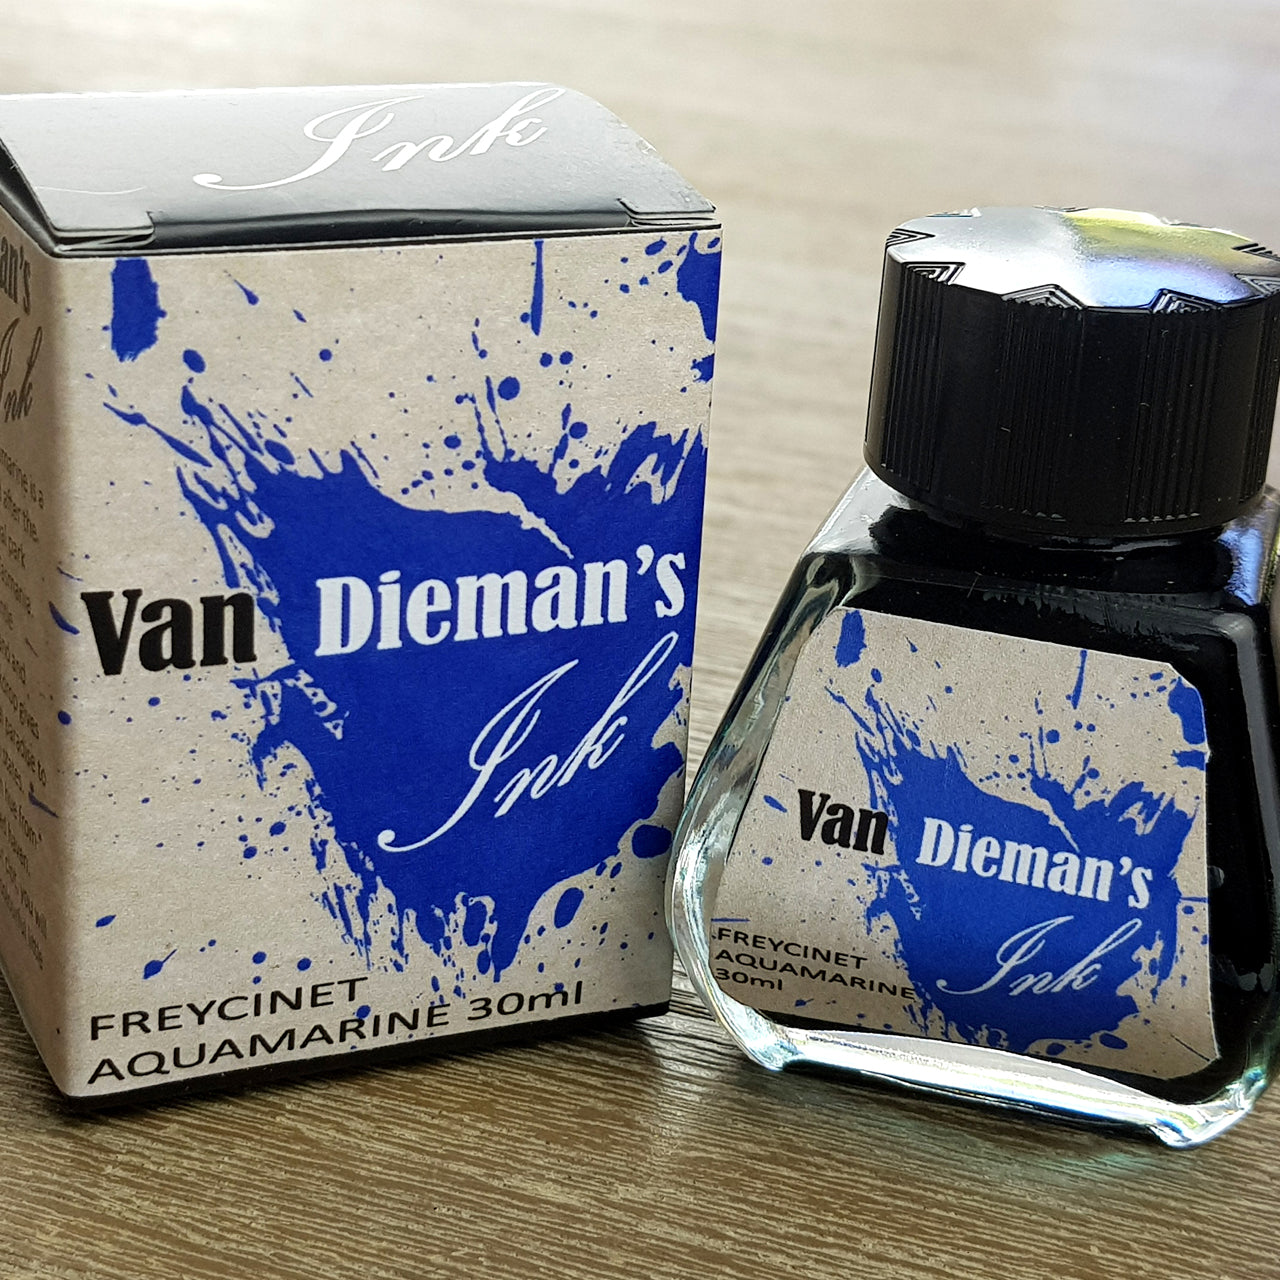 Freycinet Aquamarine - Van Dieman's Fountain Pen Ink - Original Series